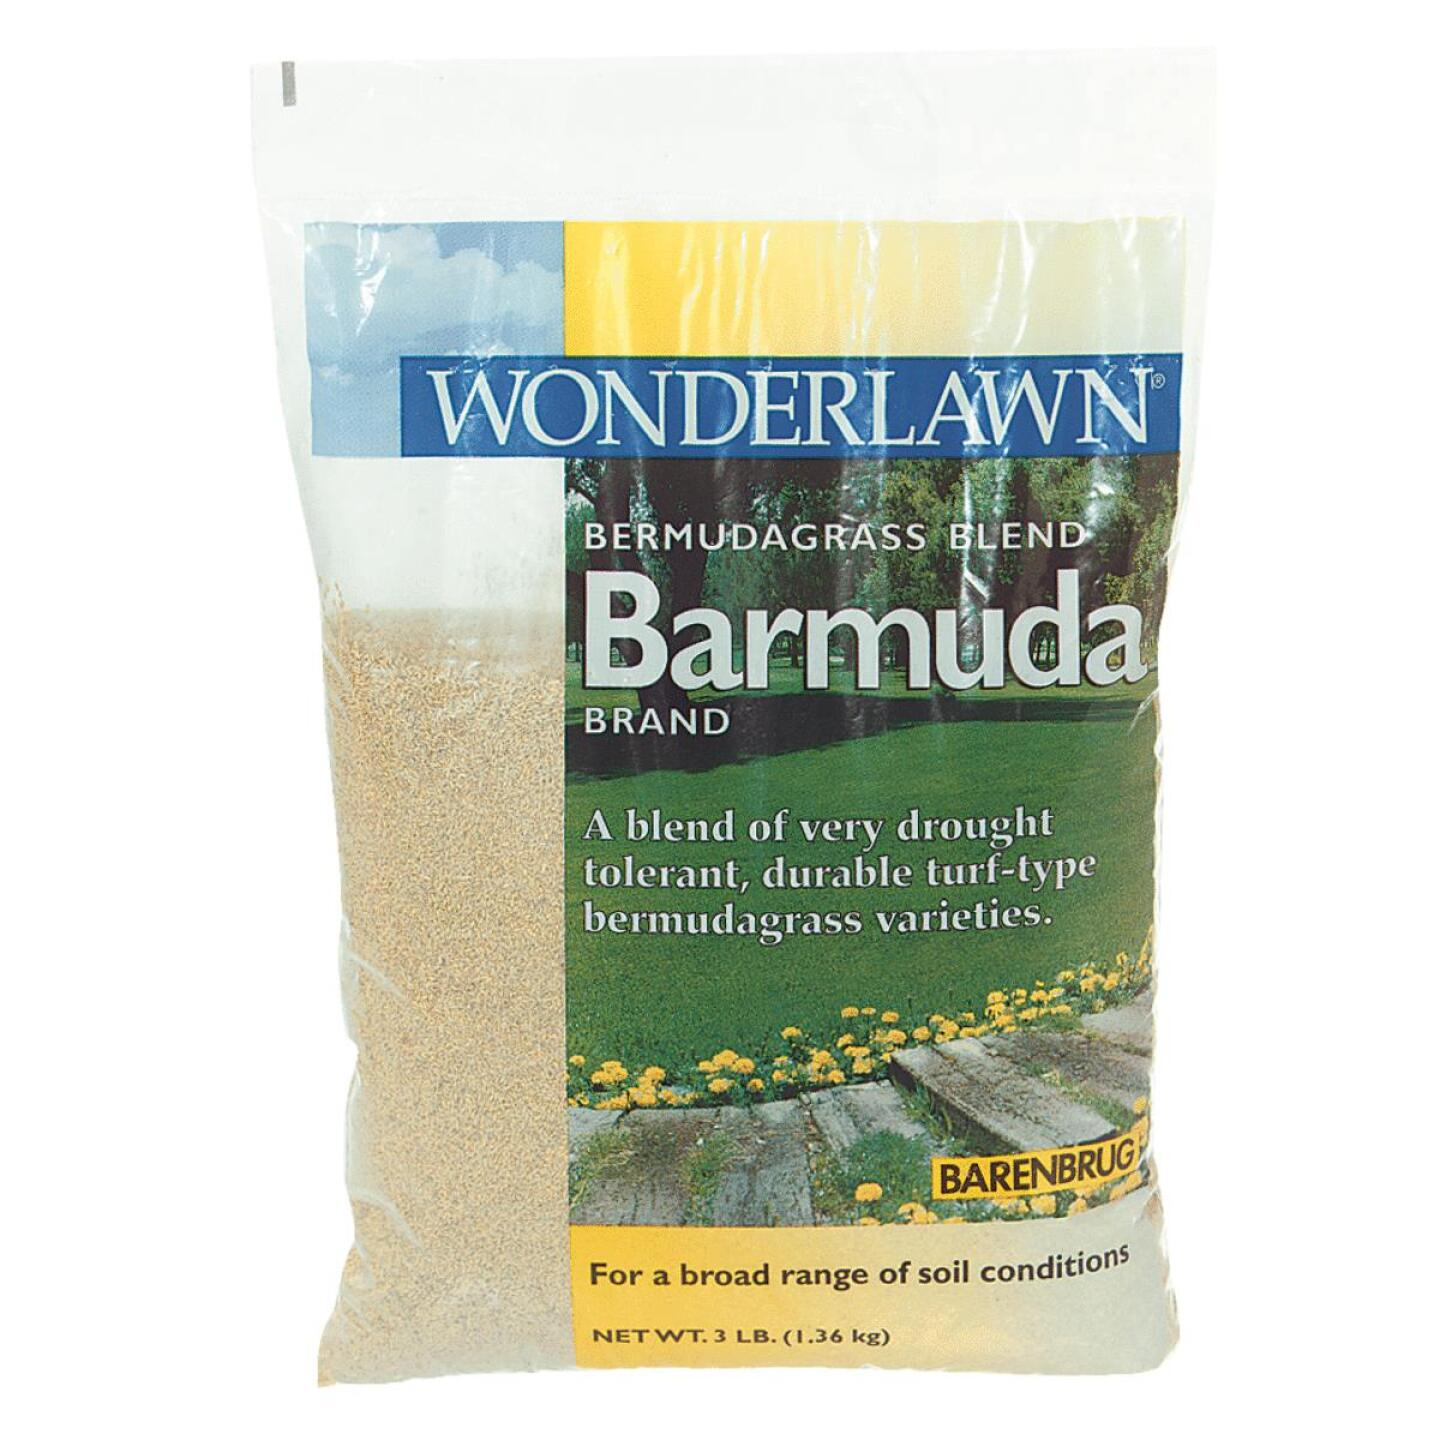 Wonderlawn 3 Lb. 675 Sq. Ft. Coverage 100% Bermuda Hulled Bermudagrass Grass Seed Image 1